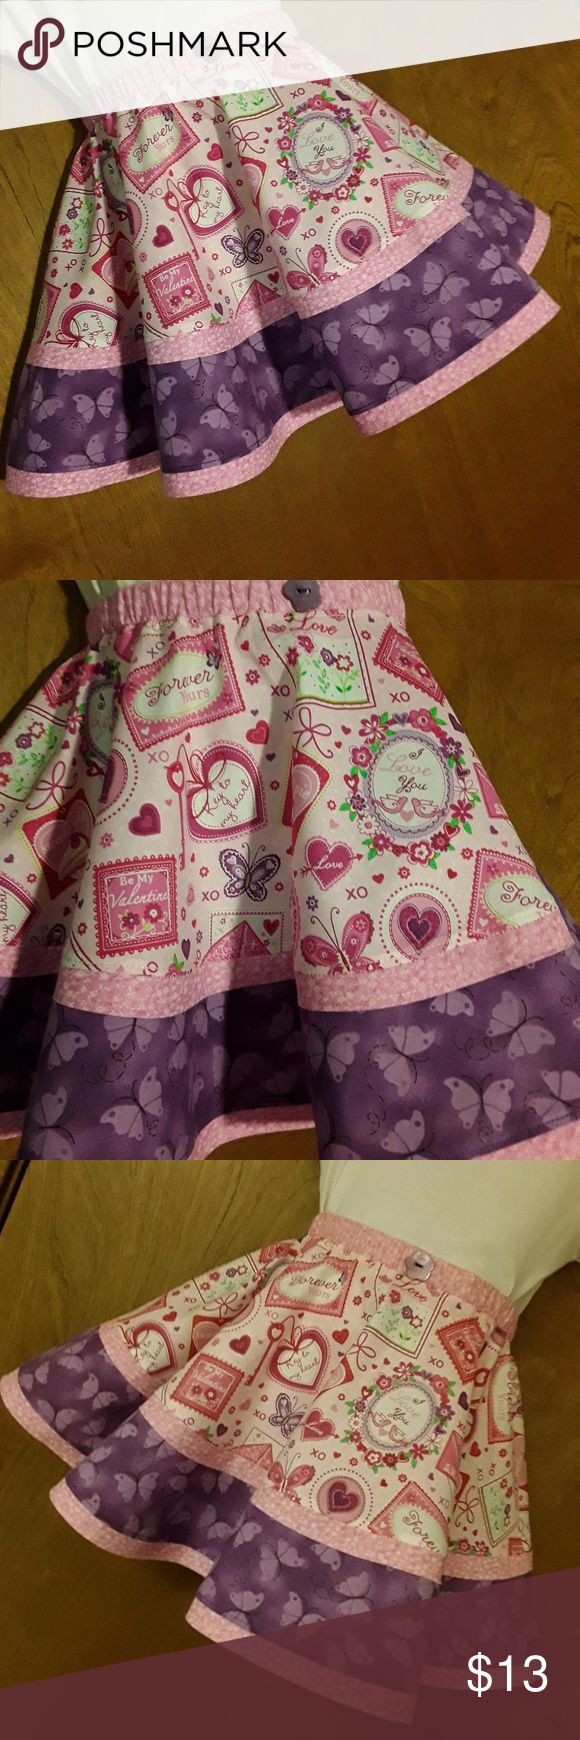 "Pixie Dust Designs Valentine's twirl skirt sz. 4 Handmade Boutique fashion new never worn. Girls twirl skirt size 2 Length of skirt 12"" long Around waist 18"" elastic waist Pixie Dust Designs Bottoms Skirts"